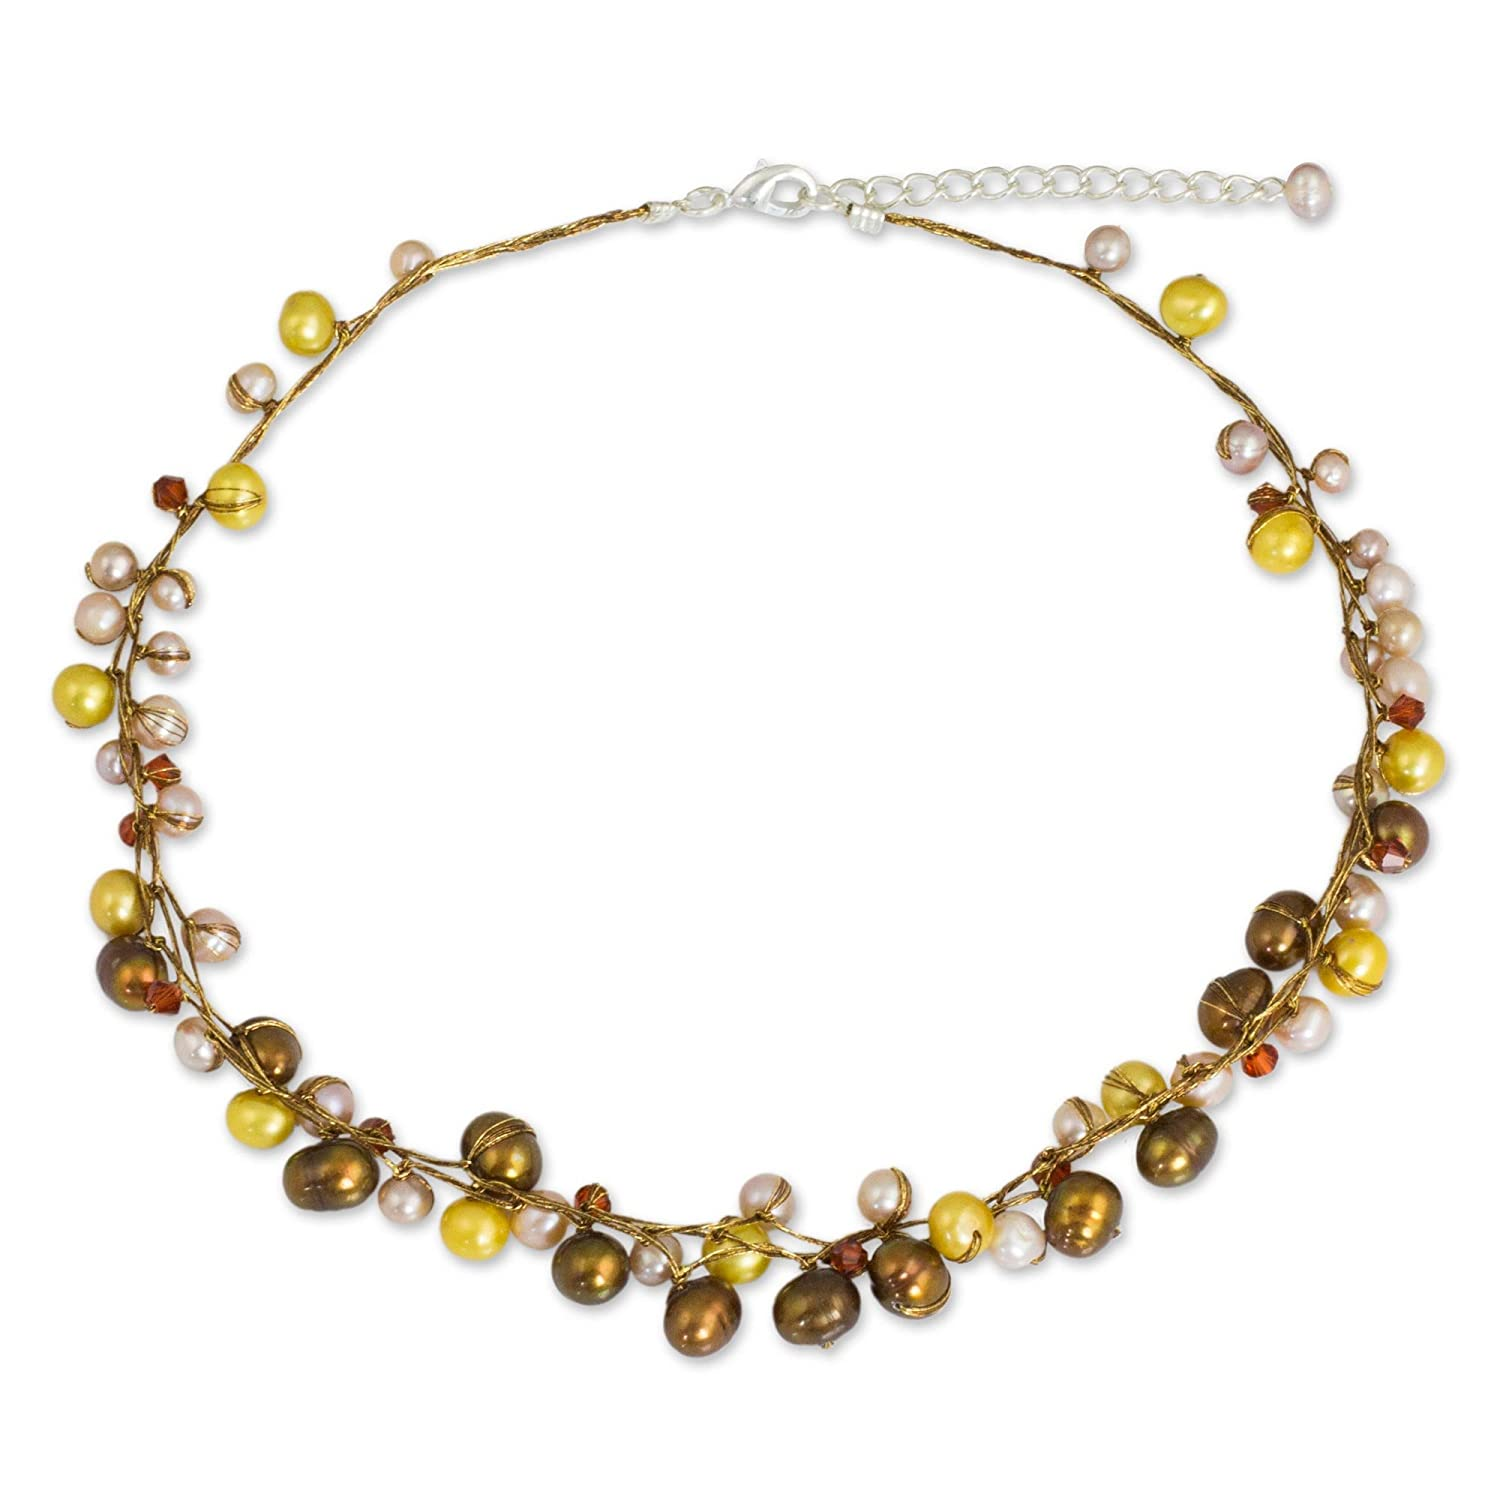 NOVICA Dyed Cultured Freshwater Pearl Strand Necklace with Stainless Steel Extender River of Gold River of Gold/' US/_JWE/_B002PC8WHE